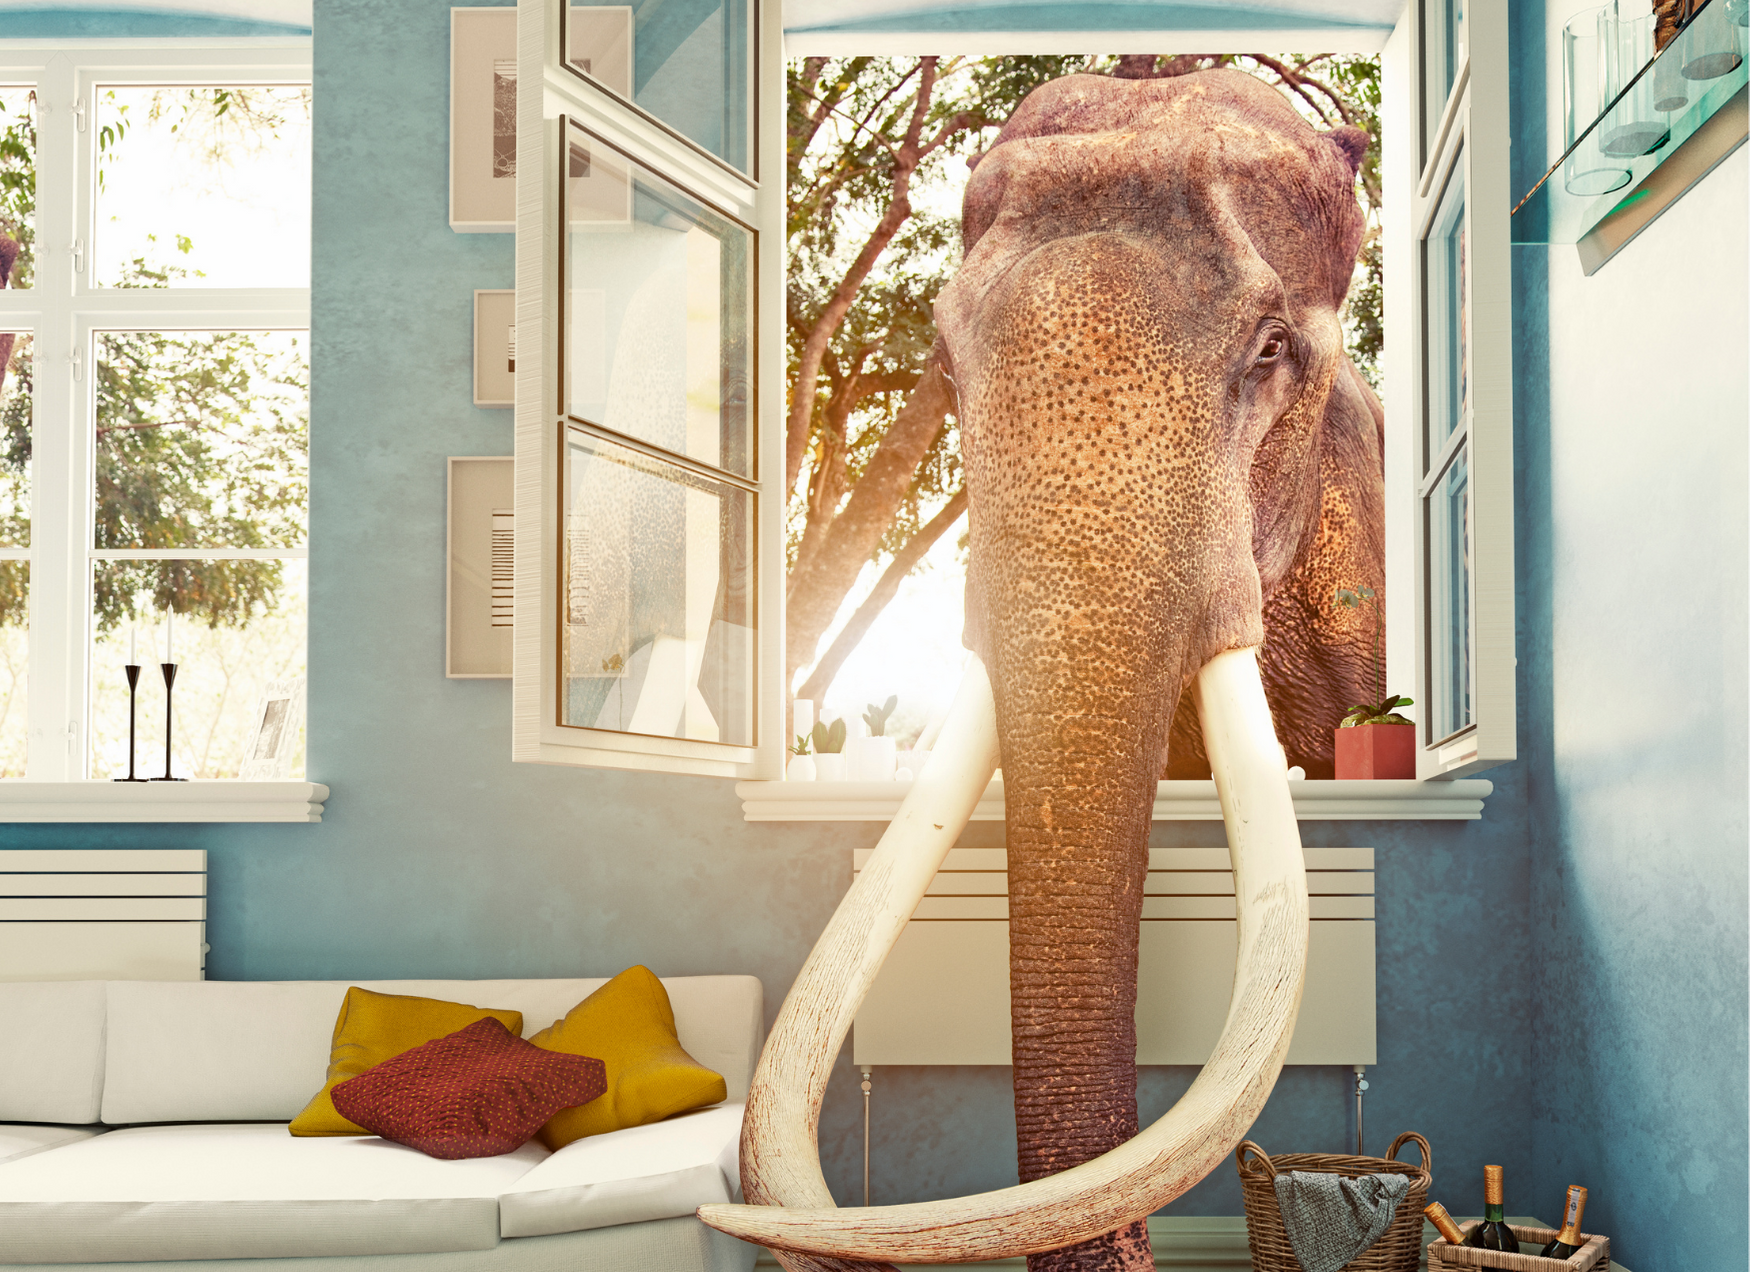 The Elephant in the Room: Reducing stigma through sharing.